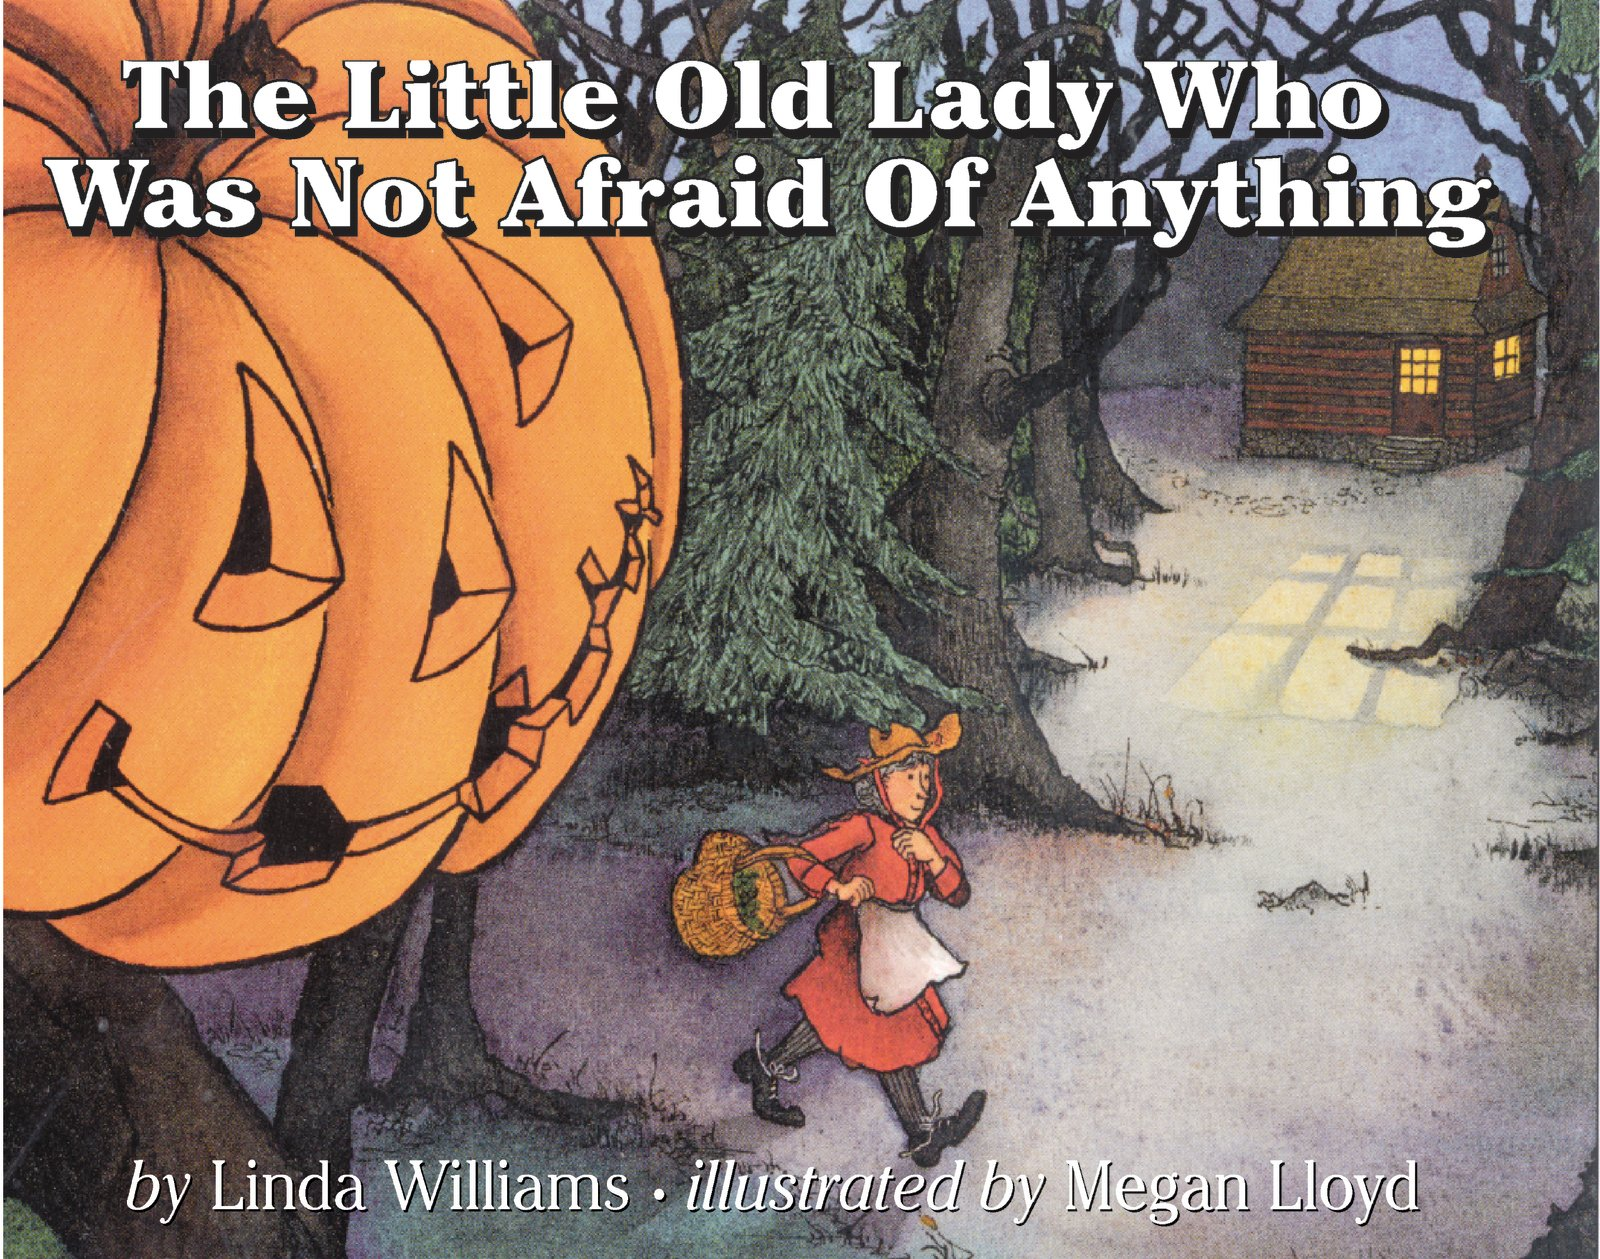 the scariest picture books for kids the little old lady who was not afraid of anything.jpg